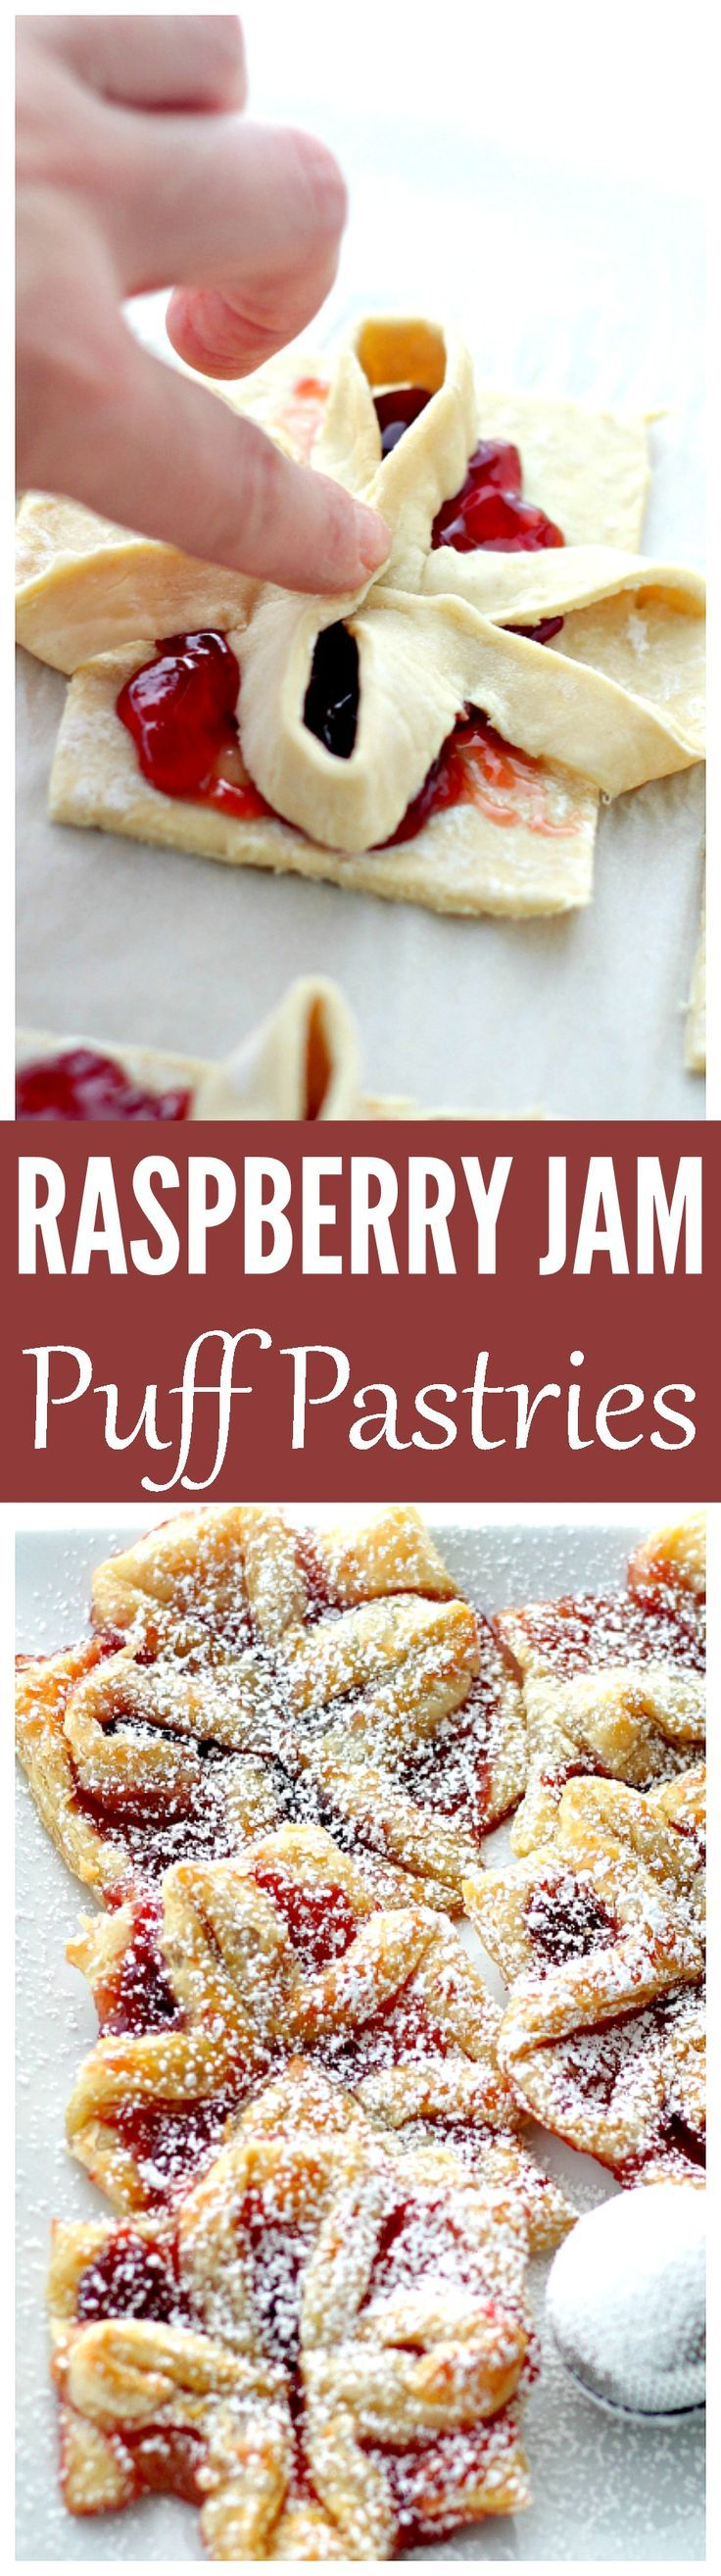 These Raspberry Jam Puff Pastries are easy to assemble and so satisfying. The layers of flaky buttery puff pastry topped with sweet jam make for an impressive and indulgent treat!: